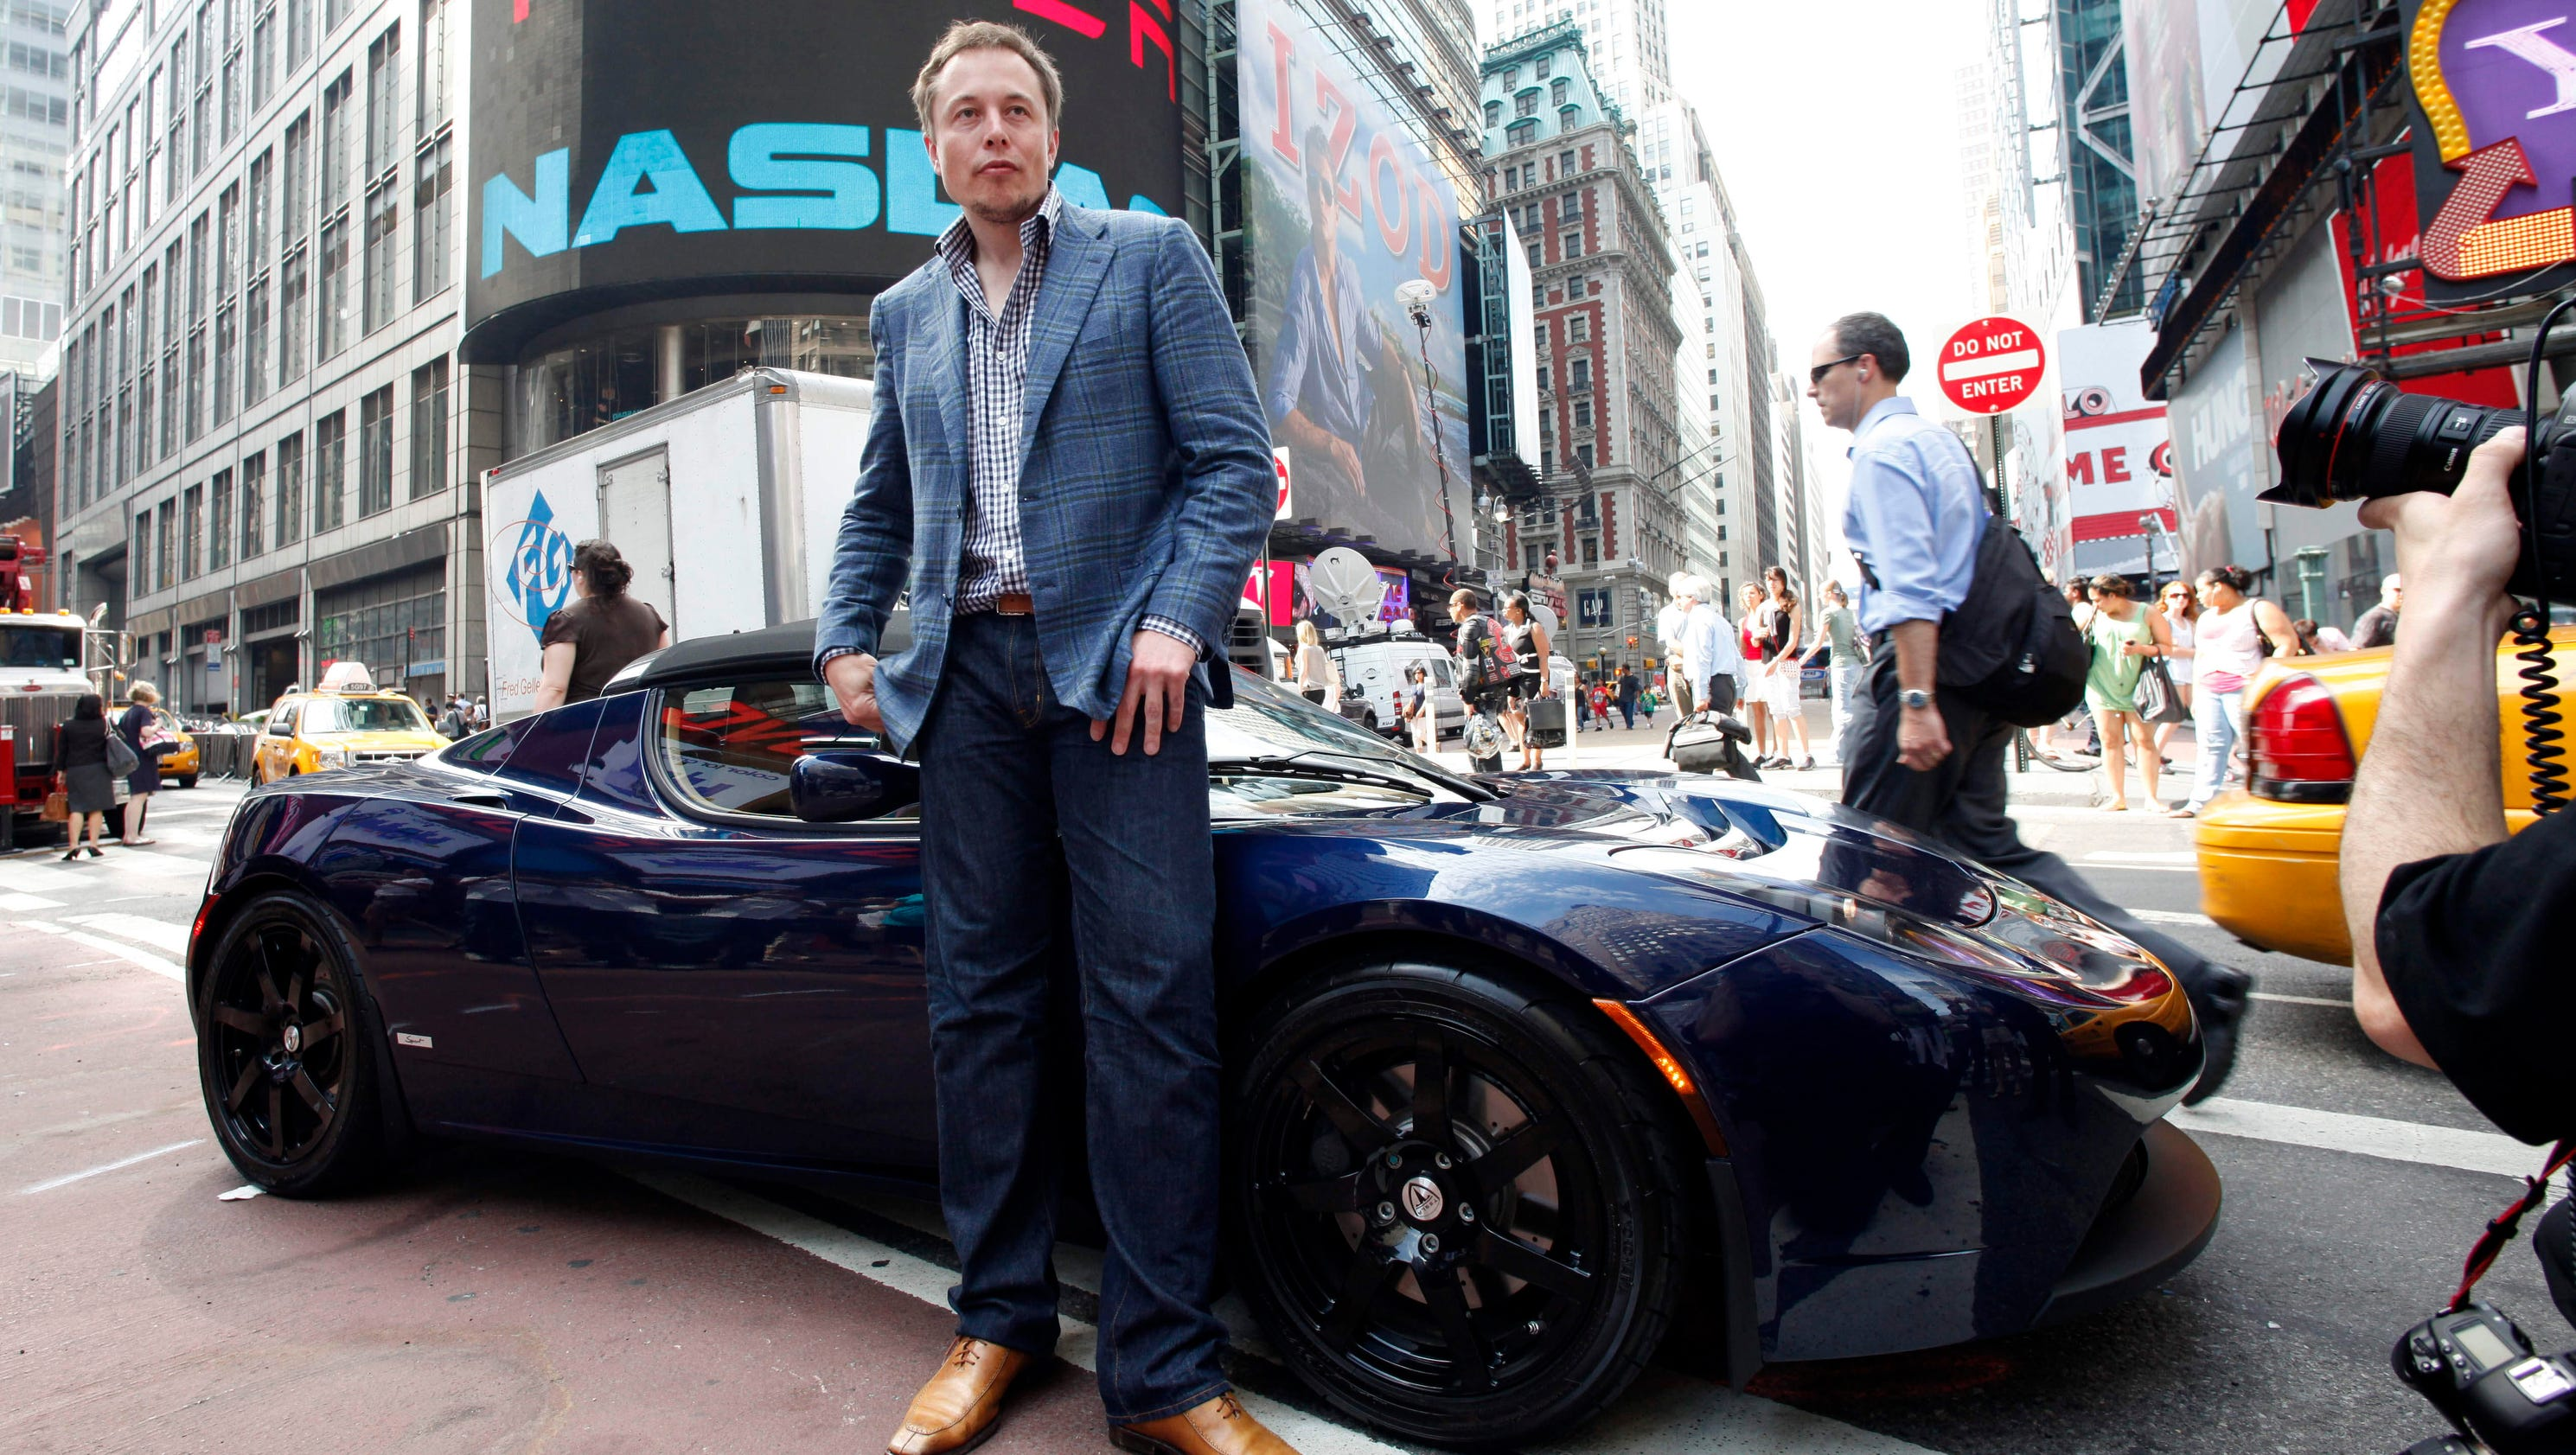 Can Musk avoid fate of DeLorean